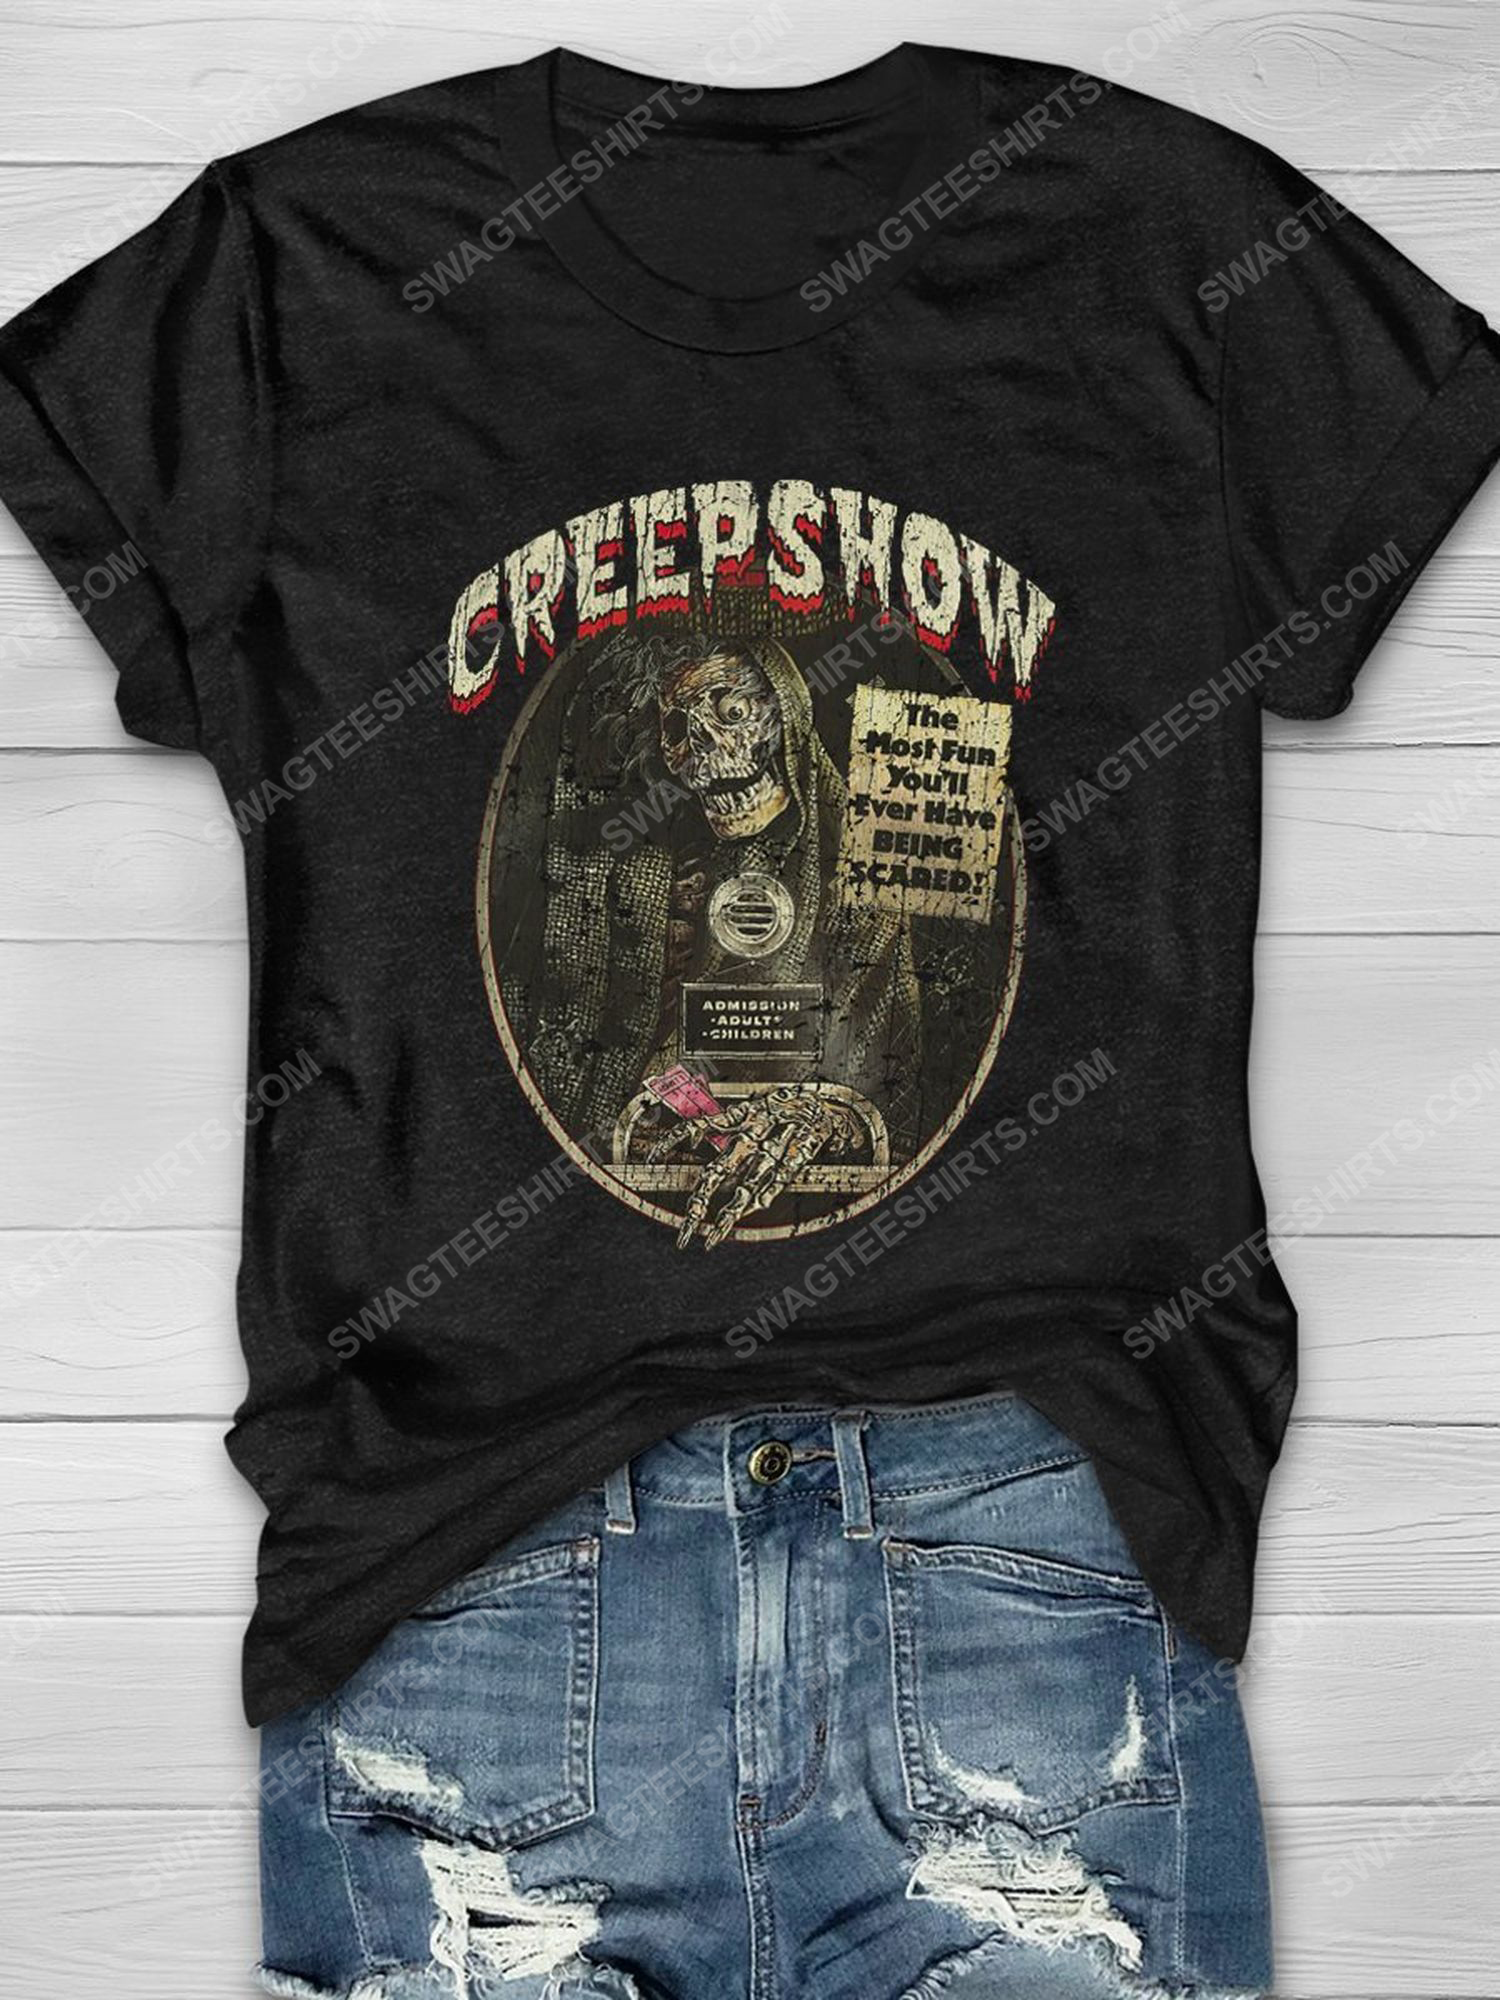 Halloween creepshow the most fun you'll ever have being scared shirt 1 - Copy